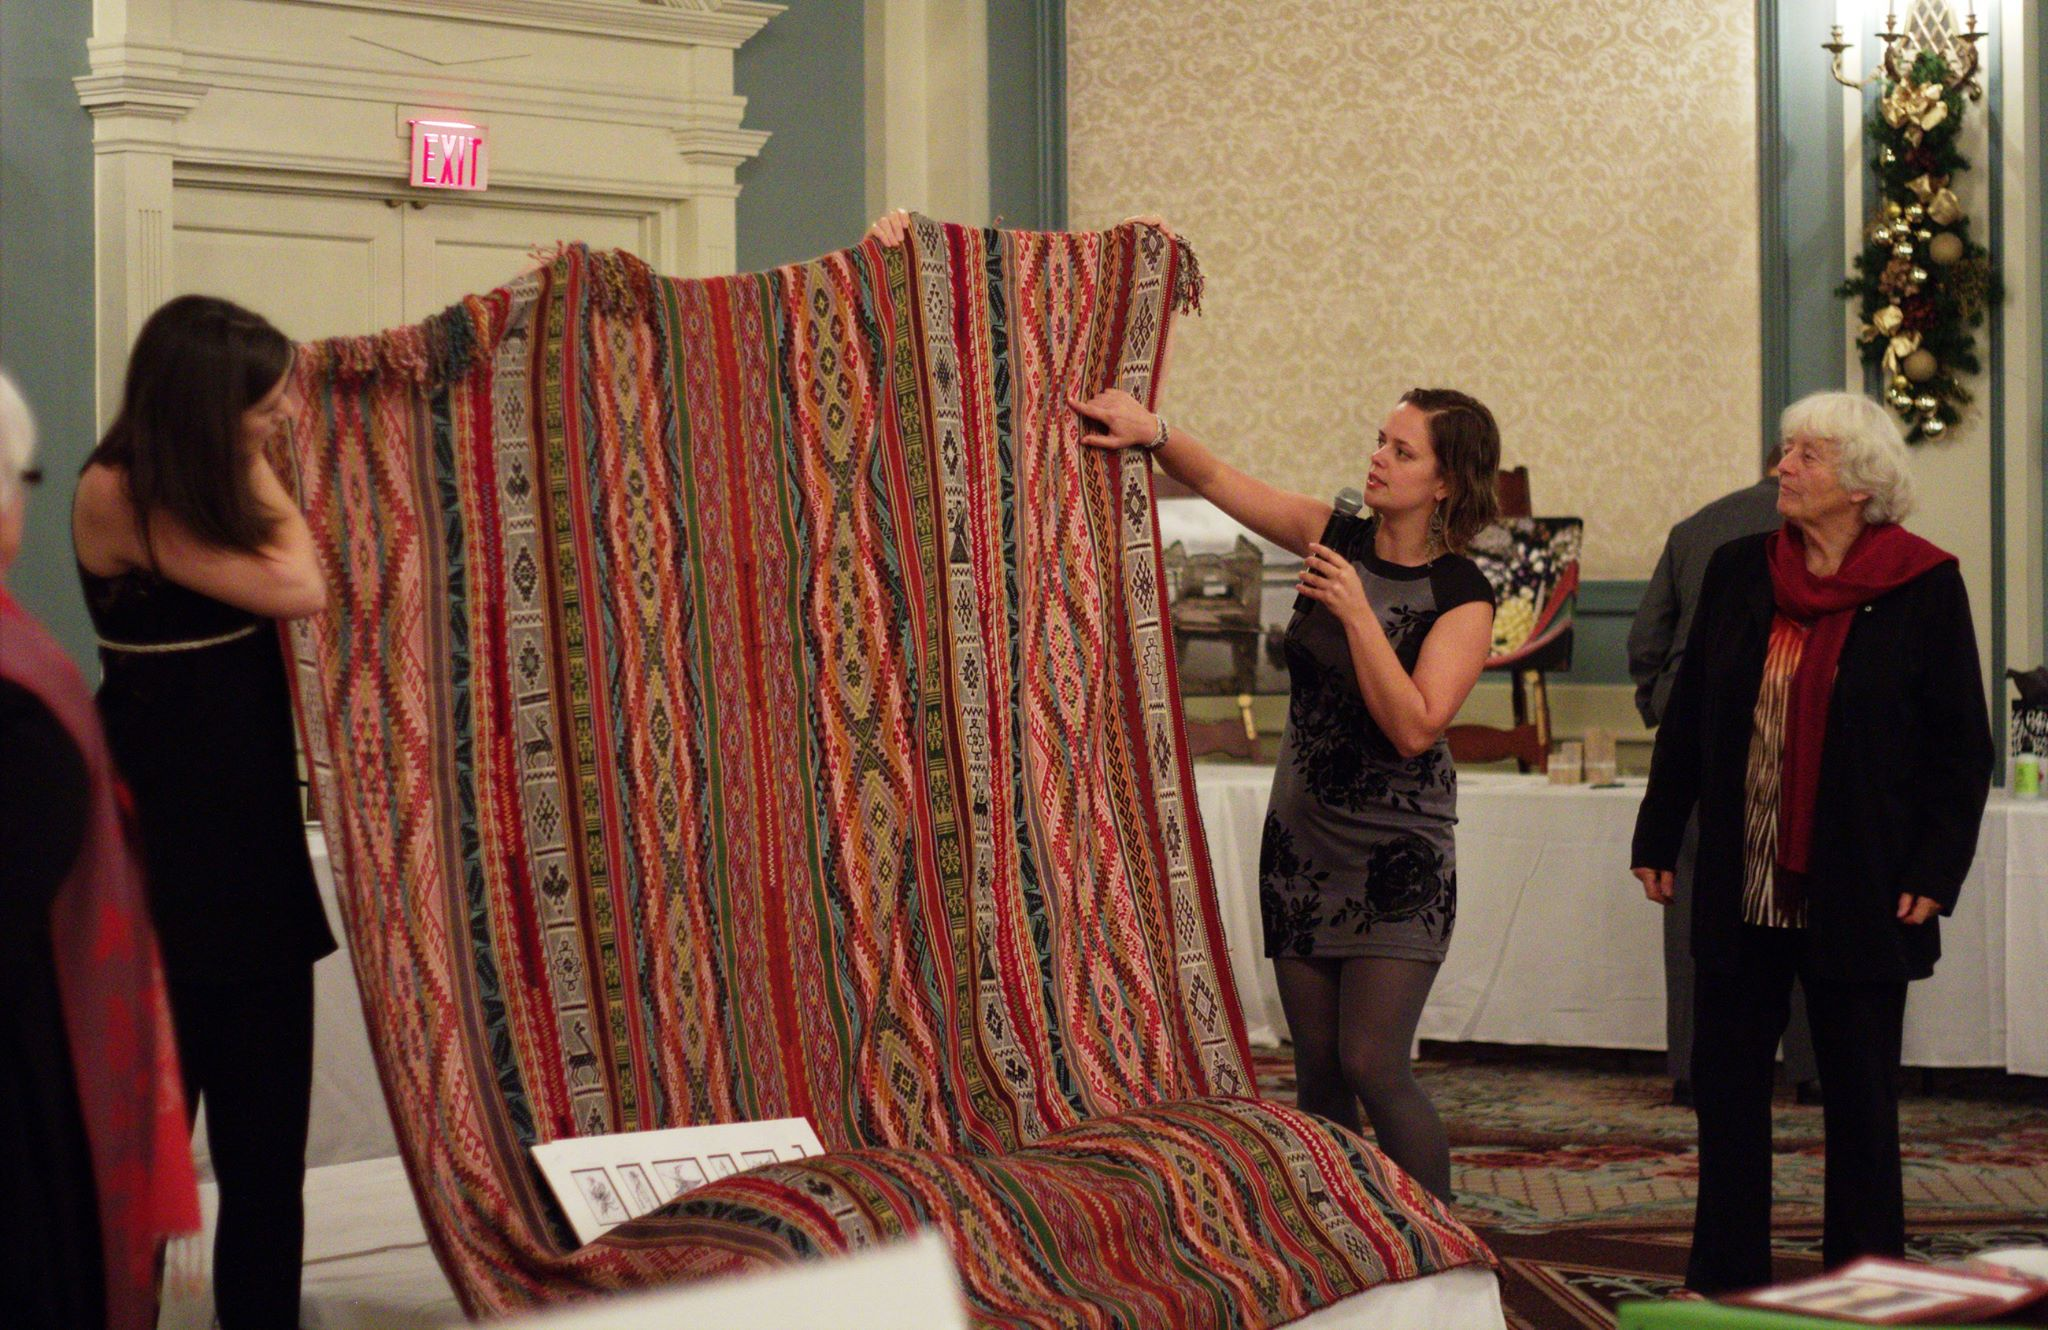 Ashli explaining designs on blanket